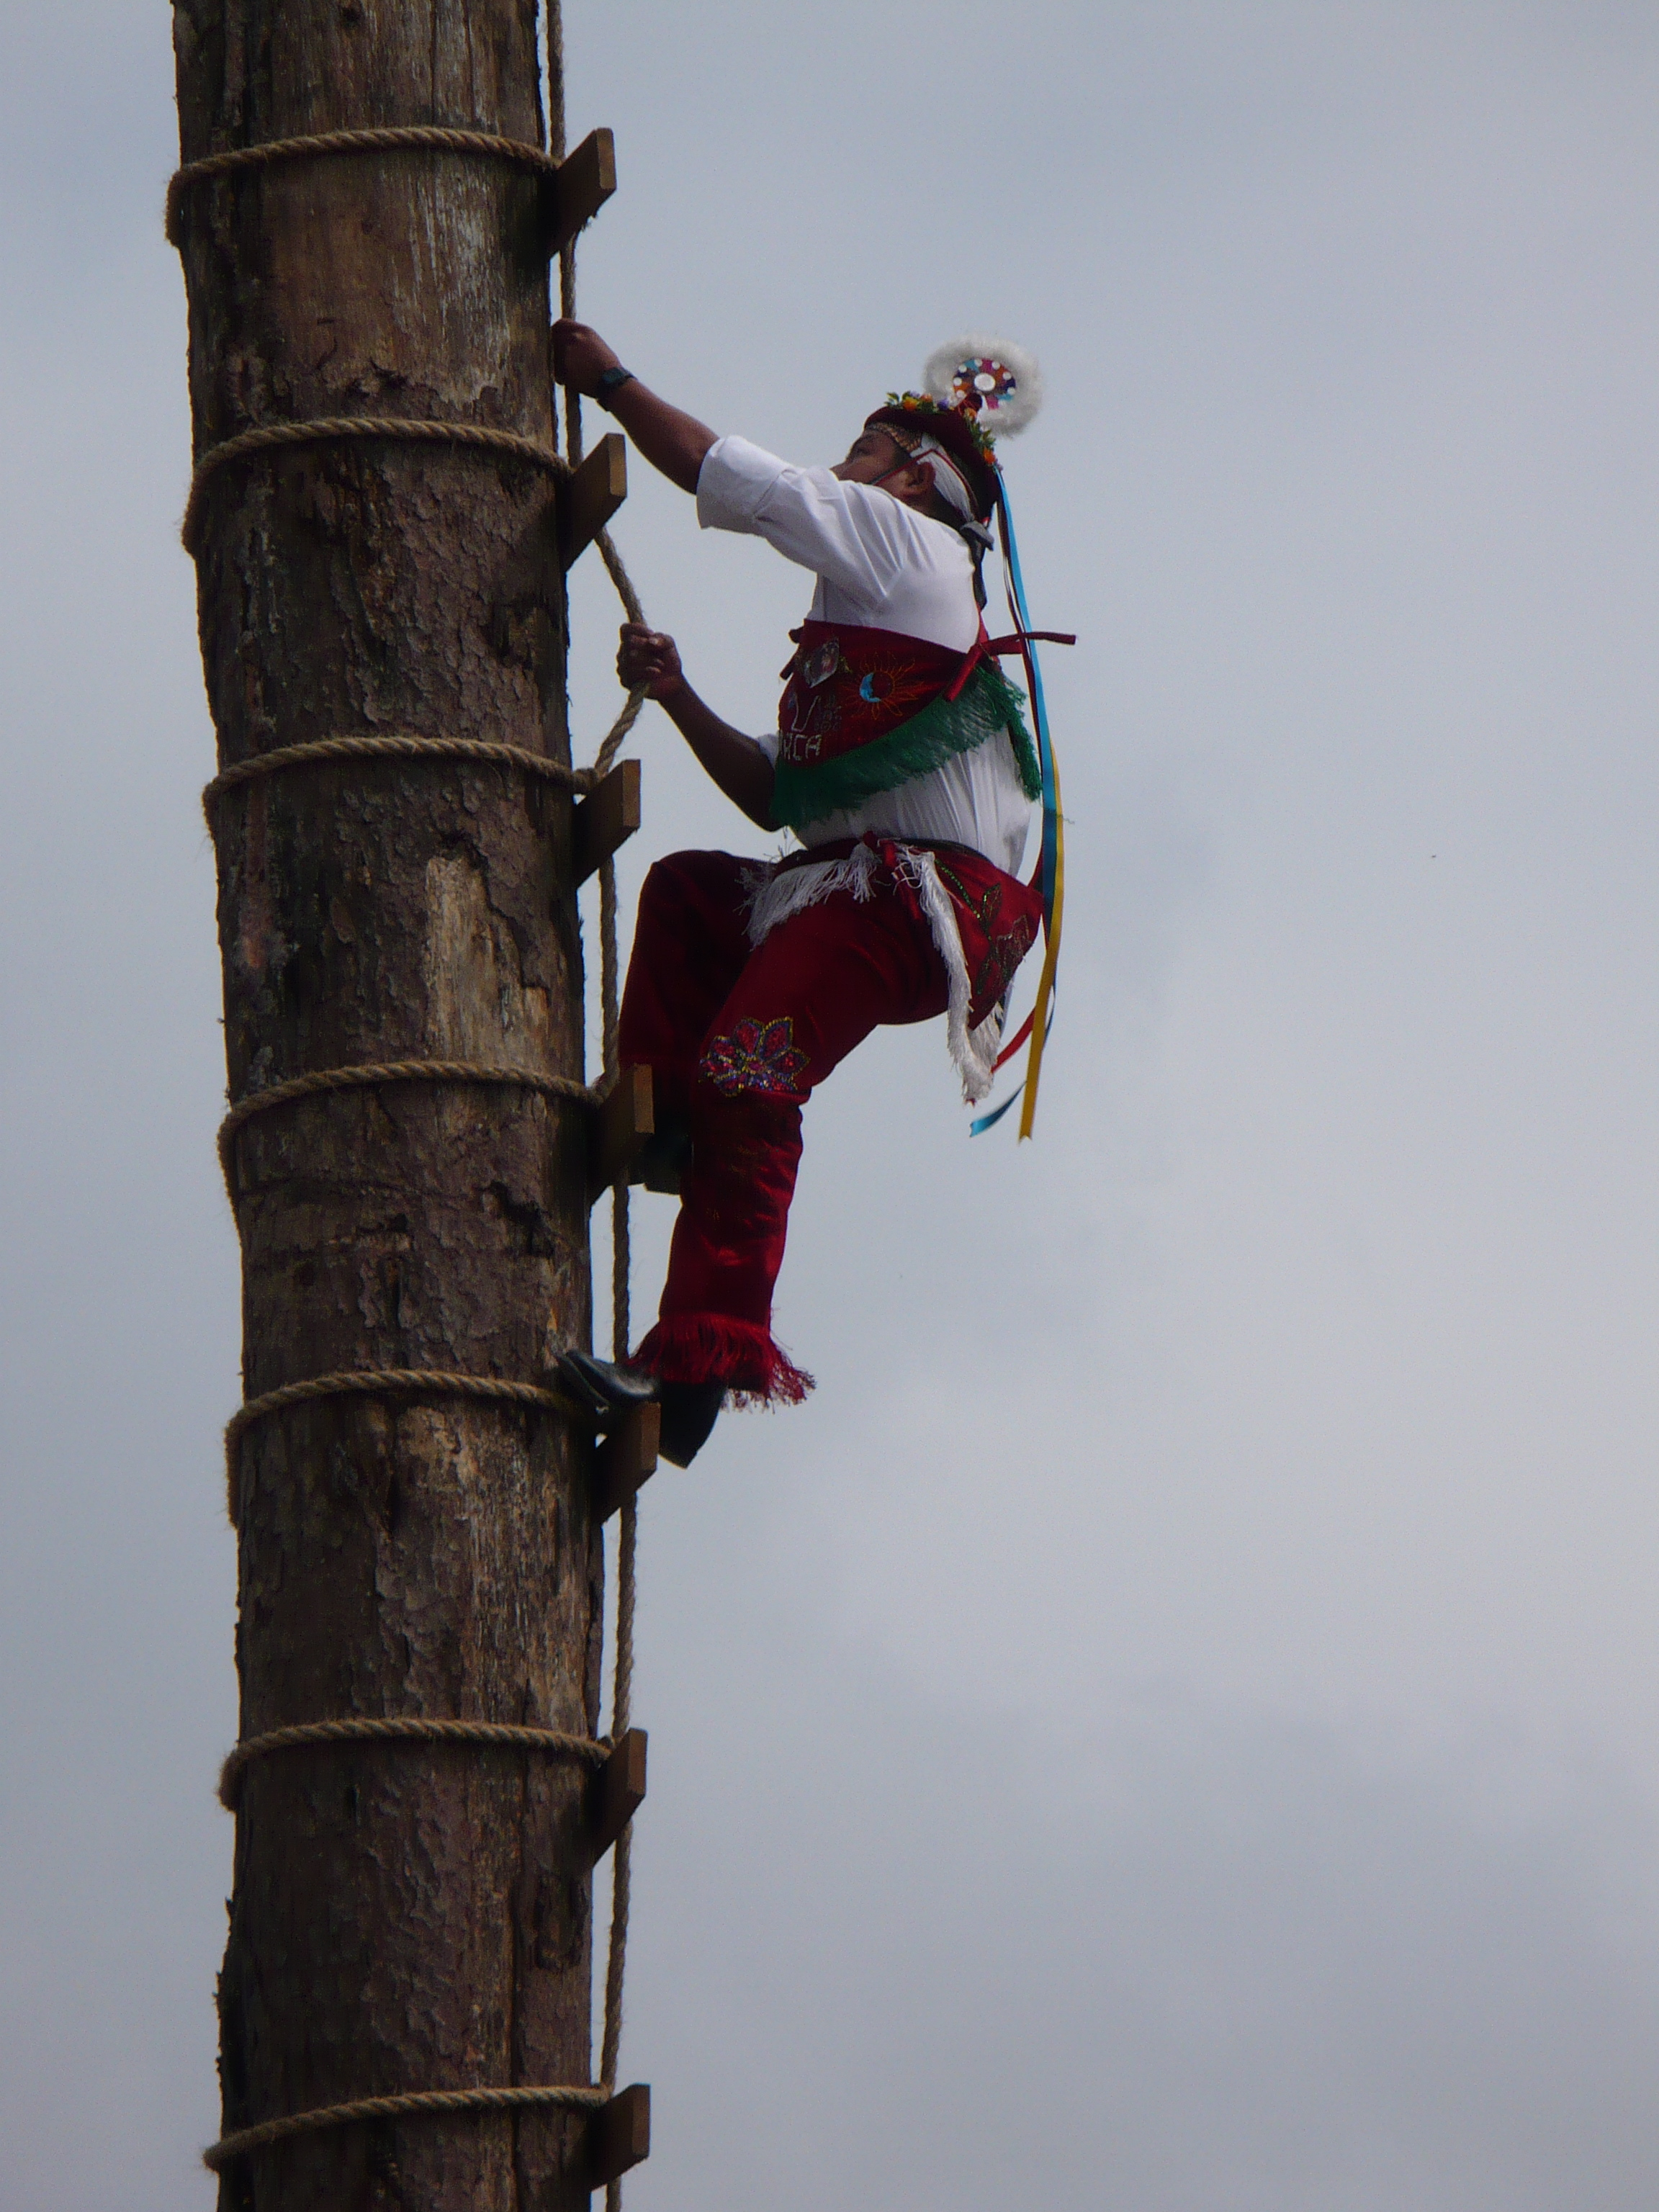 A Volador climbing the pole.